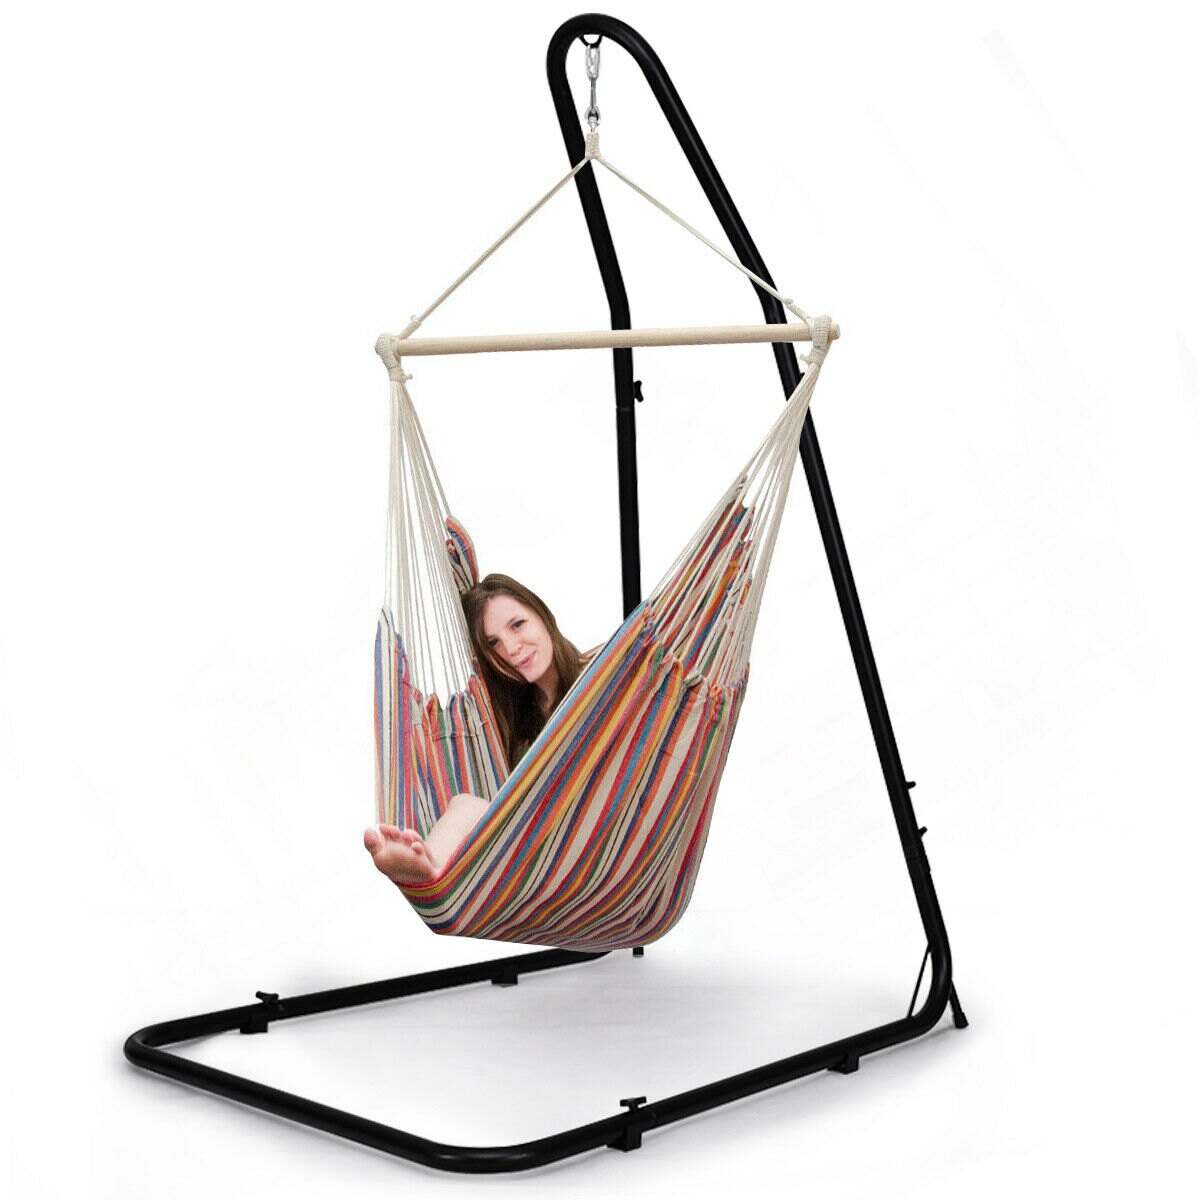 Ordinaire Costway Adjustable Hammock Chair Stand For Hammocks Swings U0026 Hanging Chairs  Steel Frame